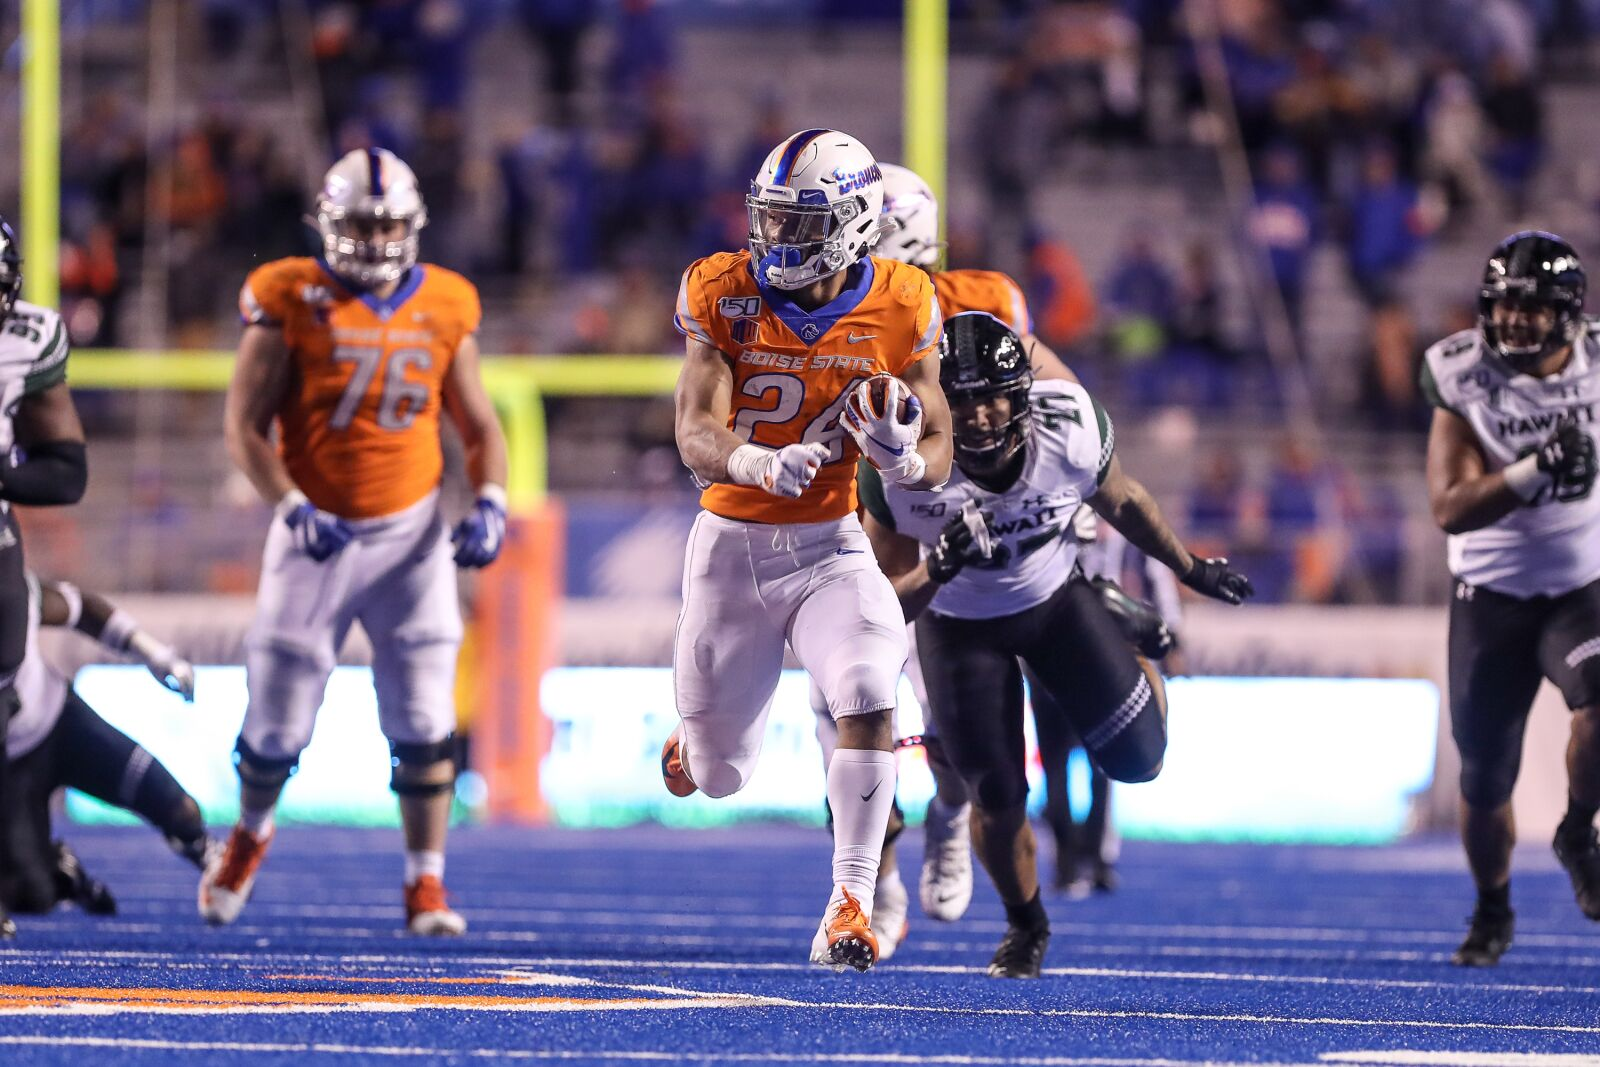 Boise State Football: 3 keys to victory vs. BYU in Week 8